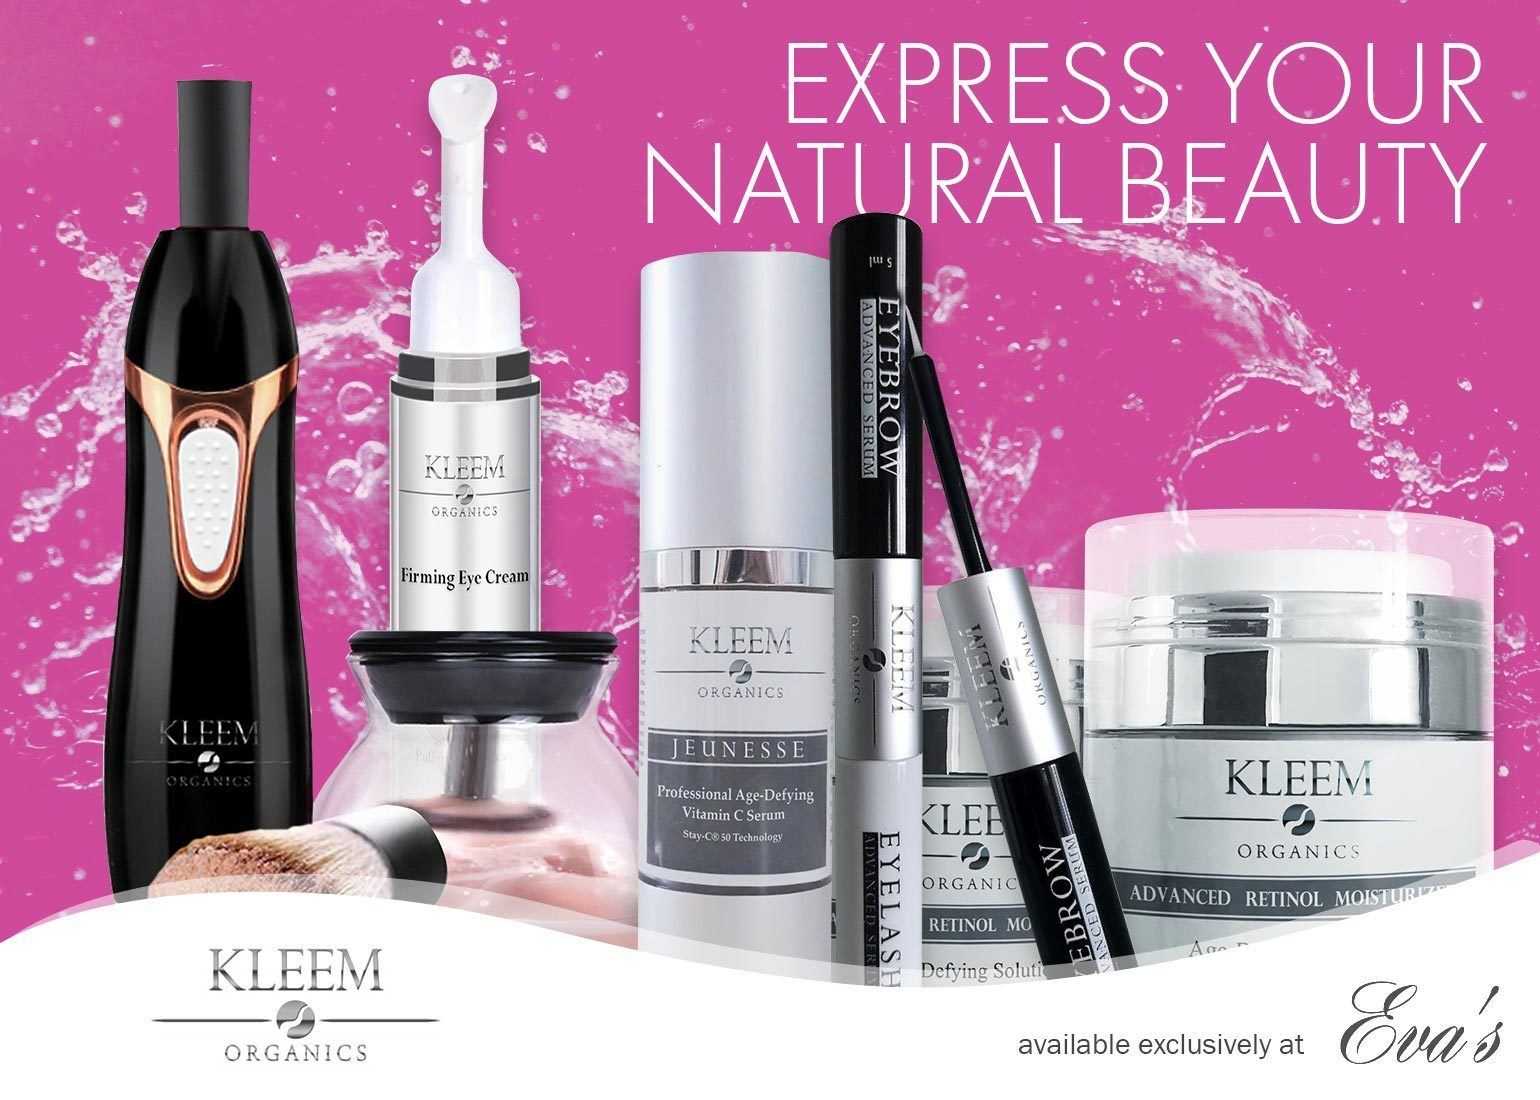 Kleem Organics Now Available Exclusively at Eva's Nail Care